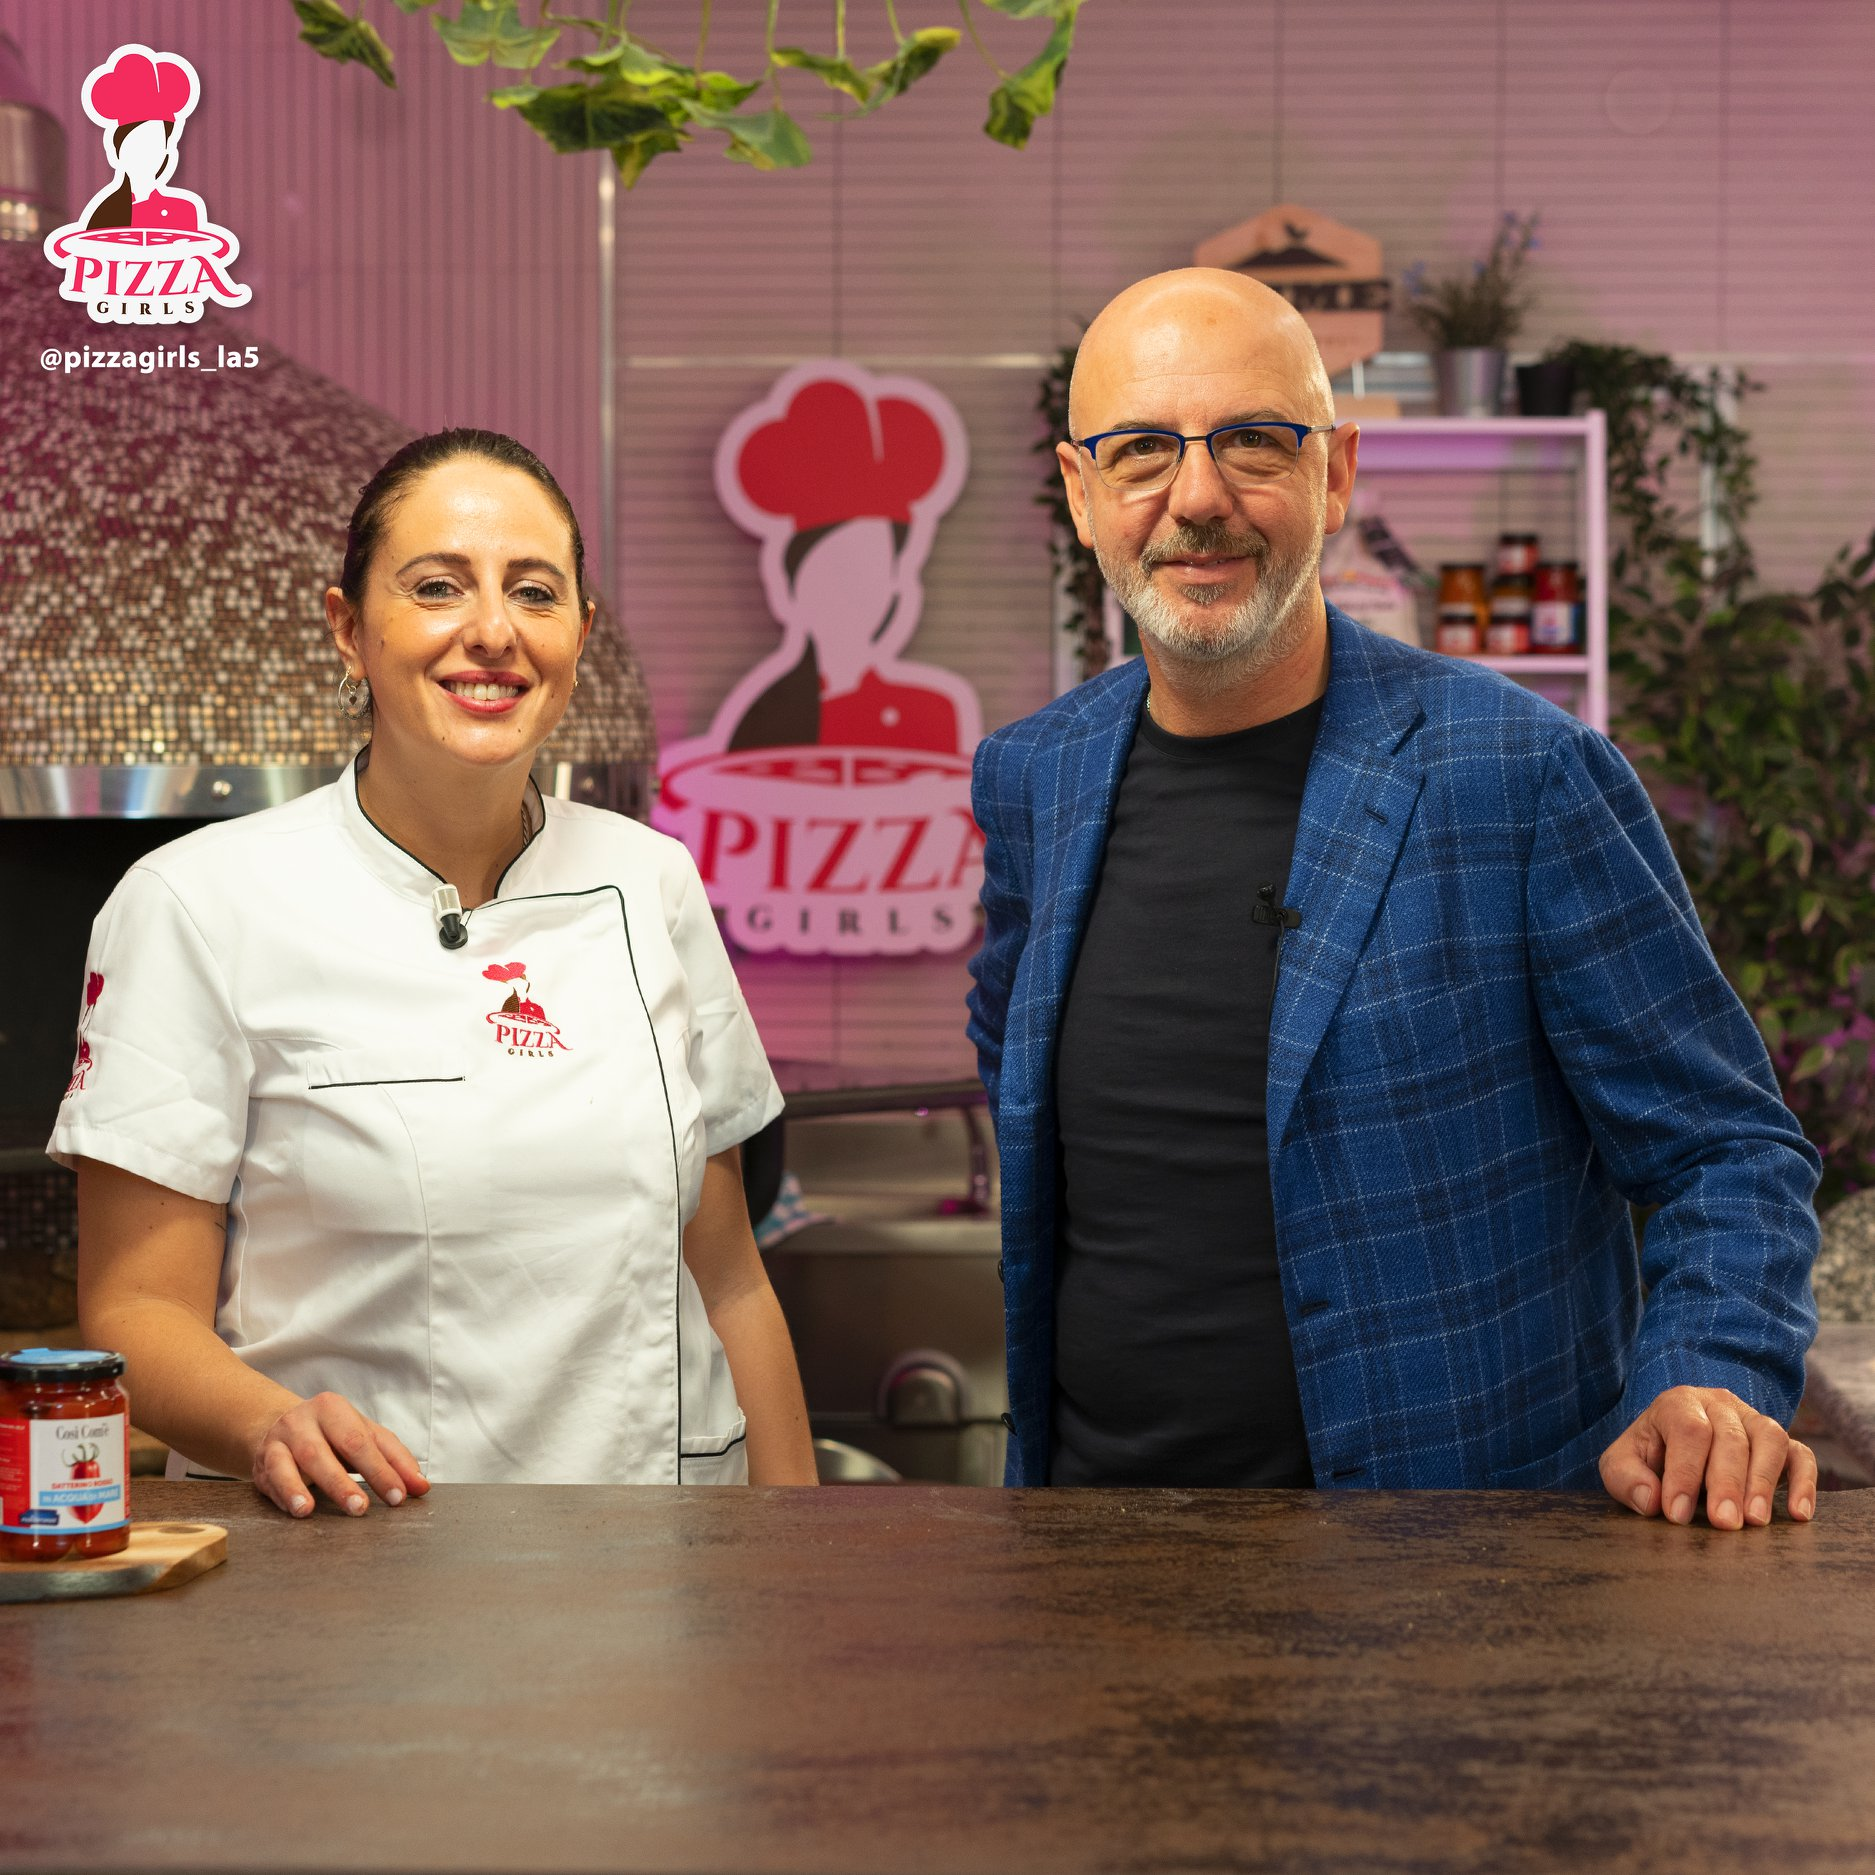 Roberta Esposito e Franco Pepe (Pizza Girls)